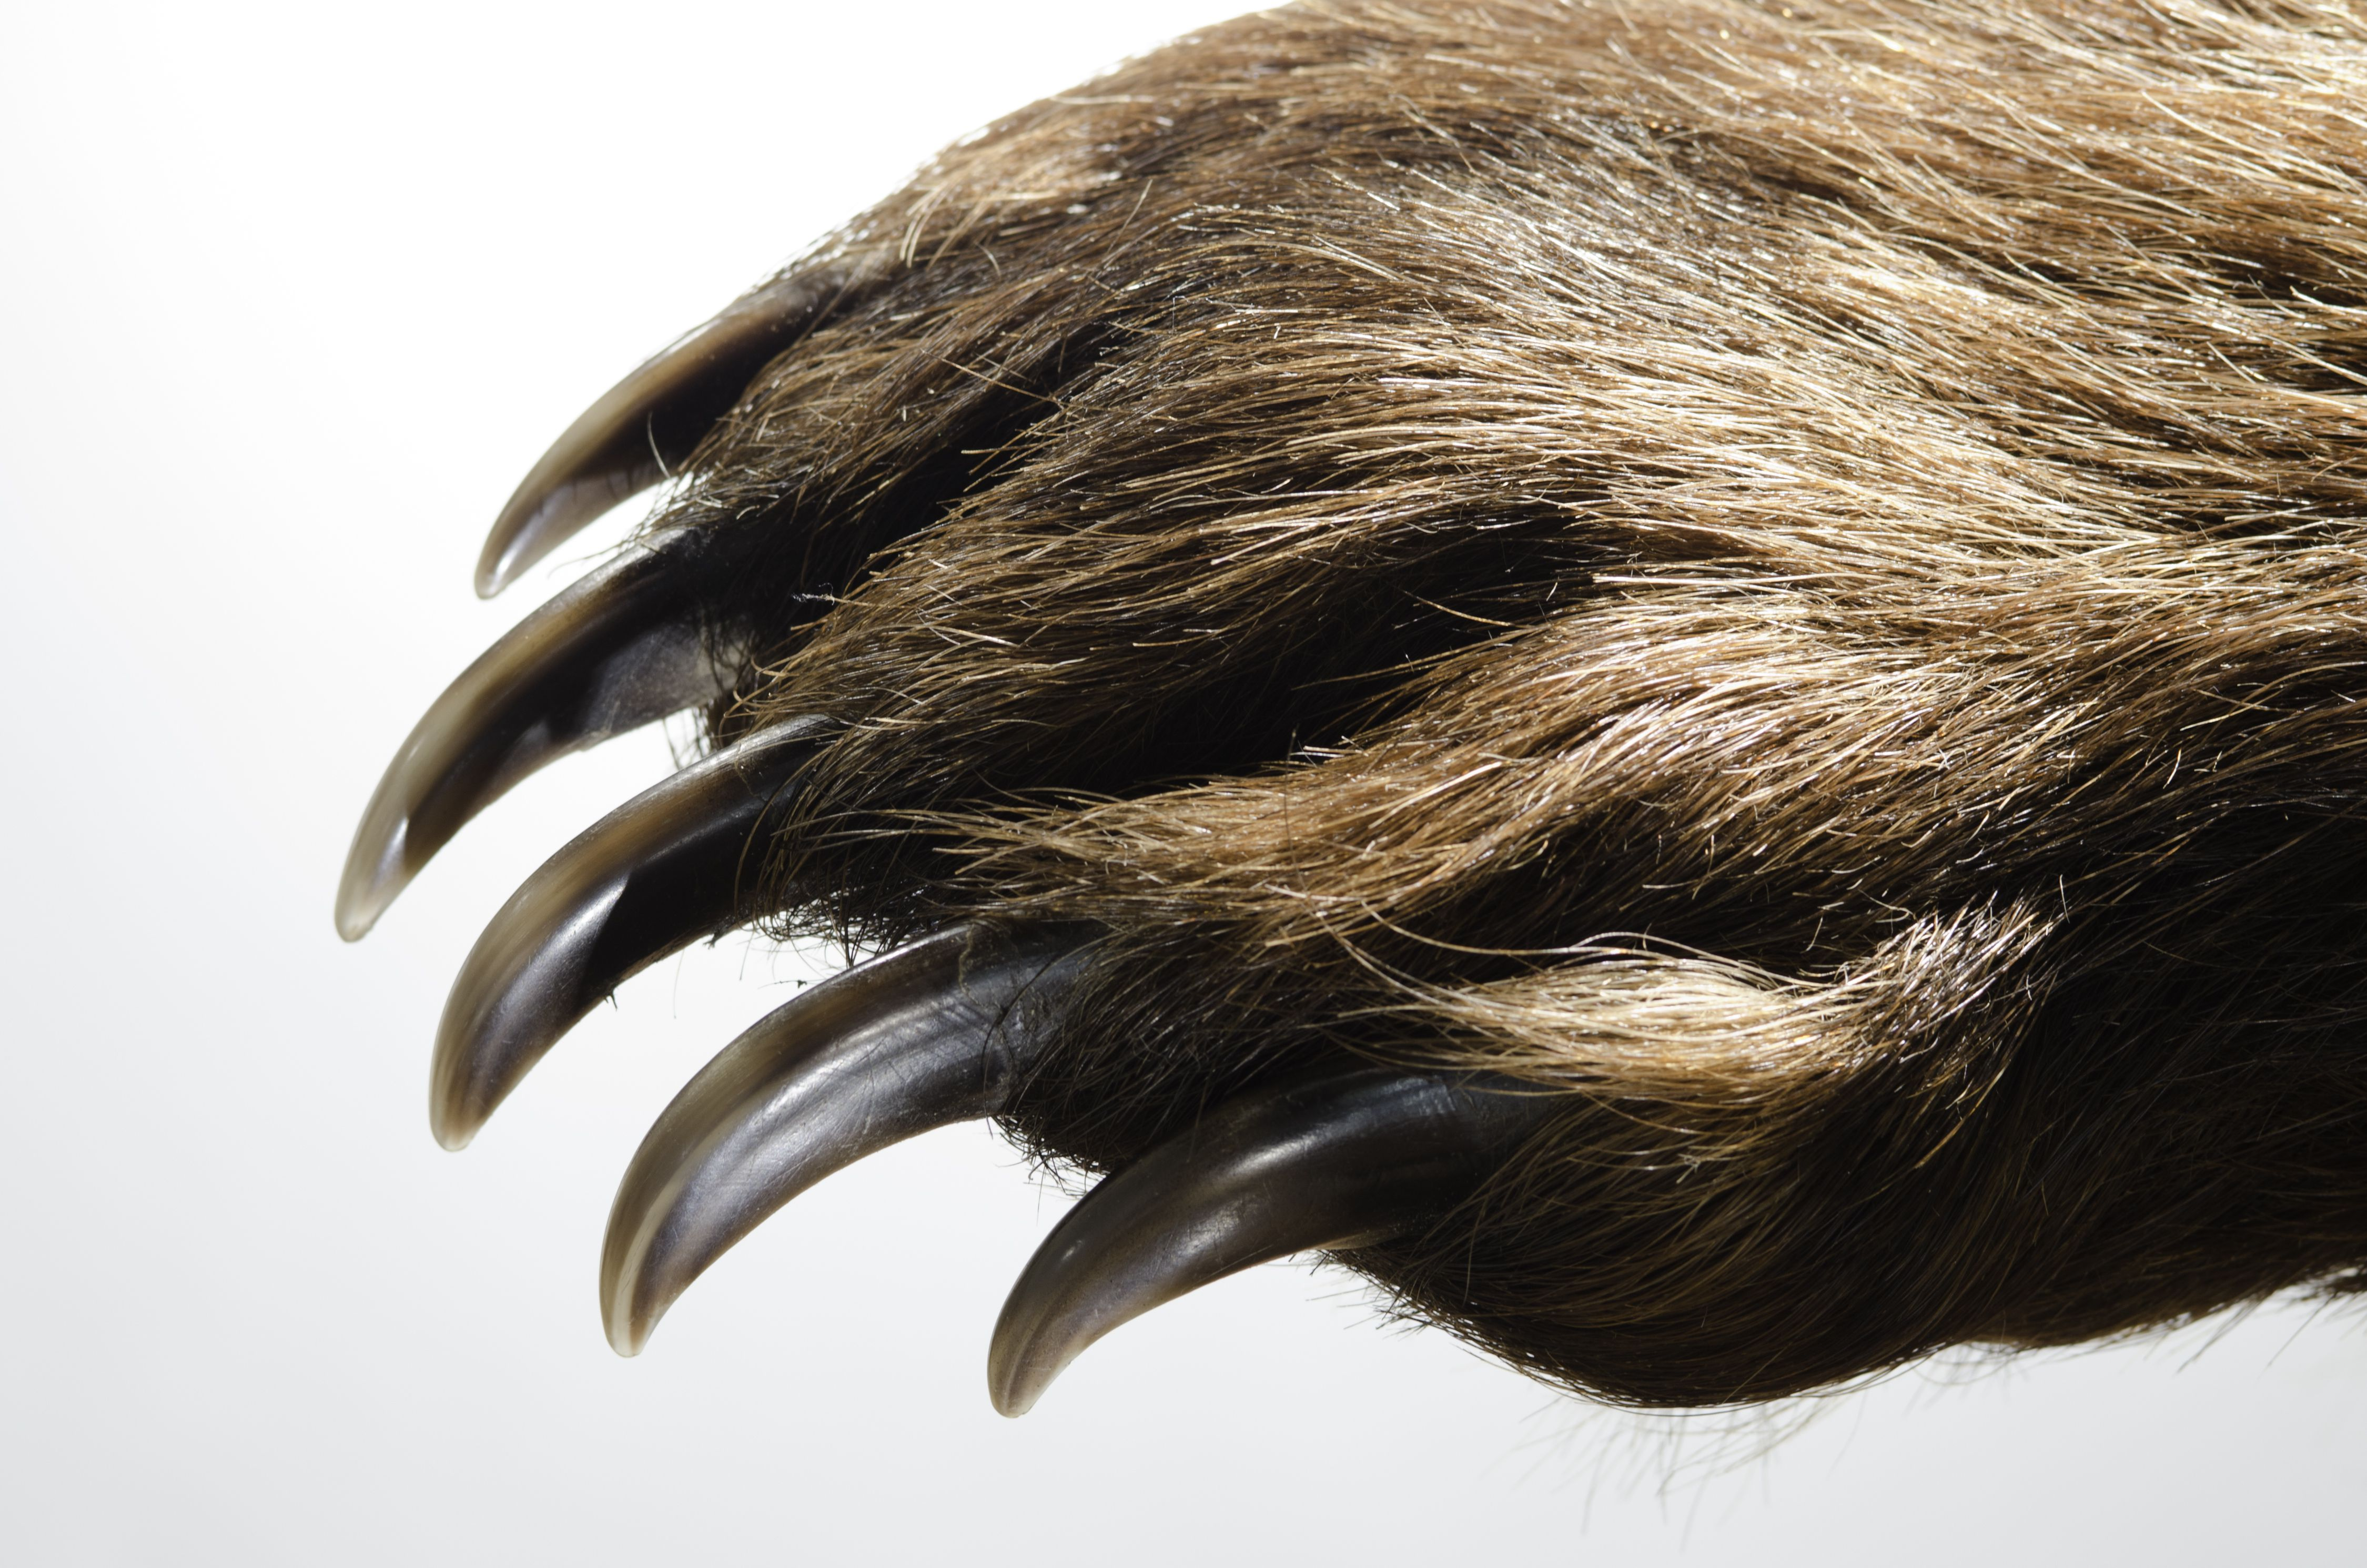 Brown bear claws are adapted for digging, not for climbing trees.